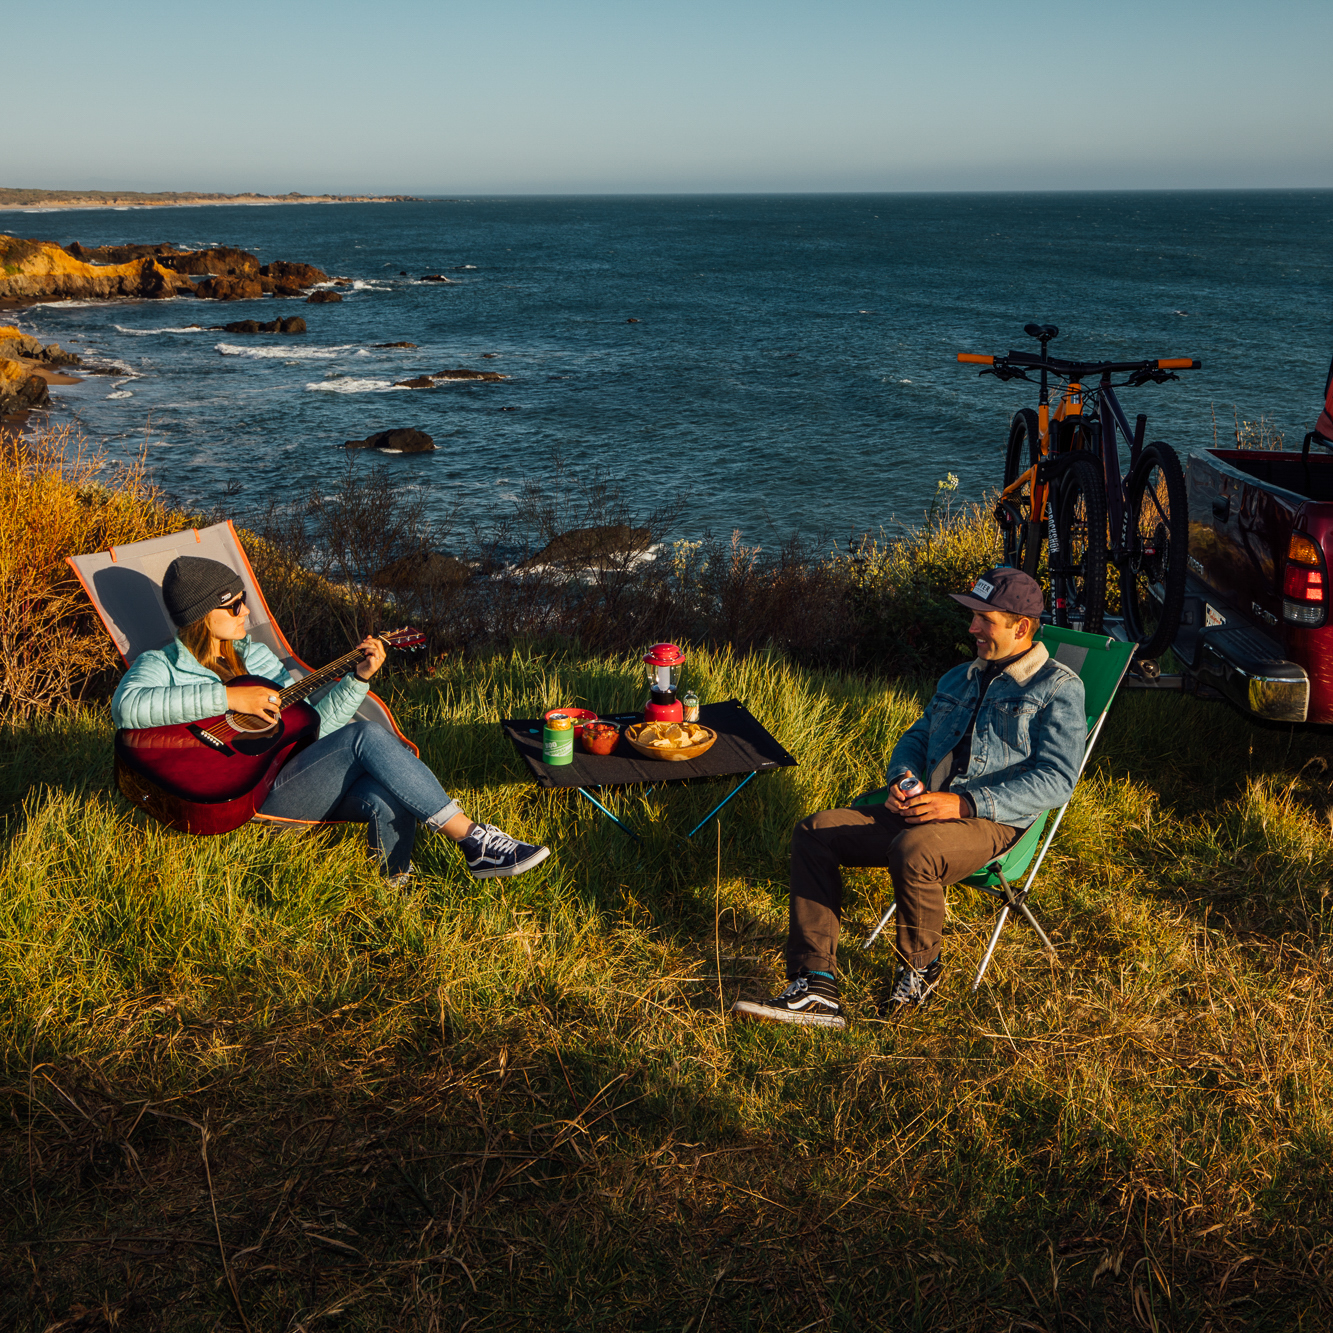 Photo Styling - It's great to be able to shoot something that looks like a camping trip, by just going camping, but that doesn't always fit product schedules, marketing budgets, etc. We were able to have key elements in the images that help to tell a more nuanced and rich story.